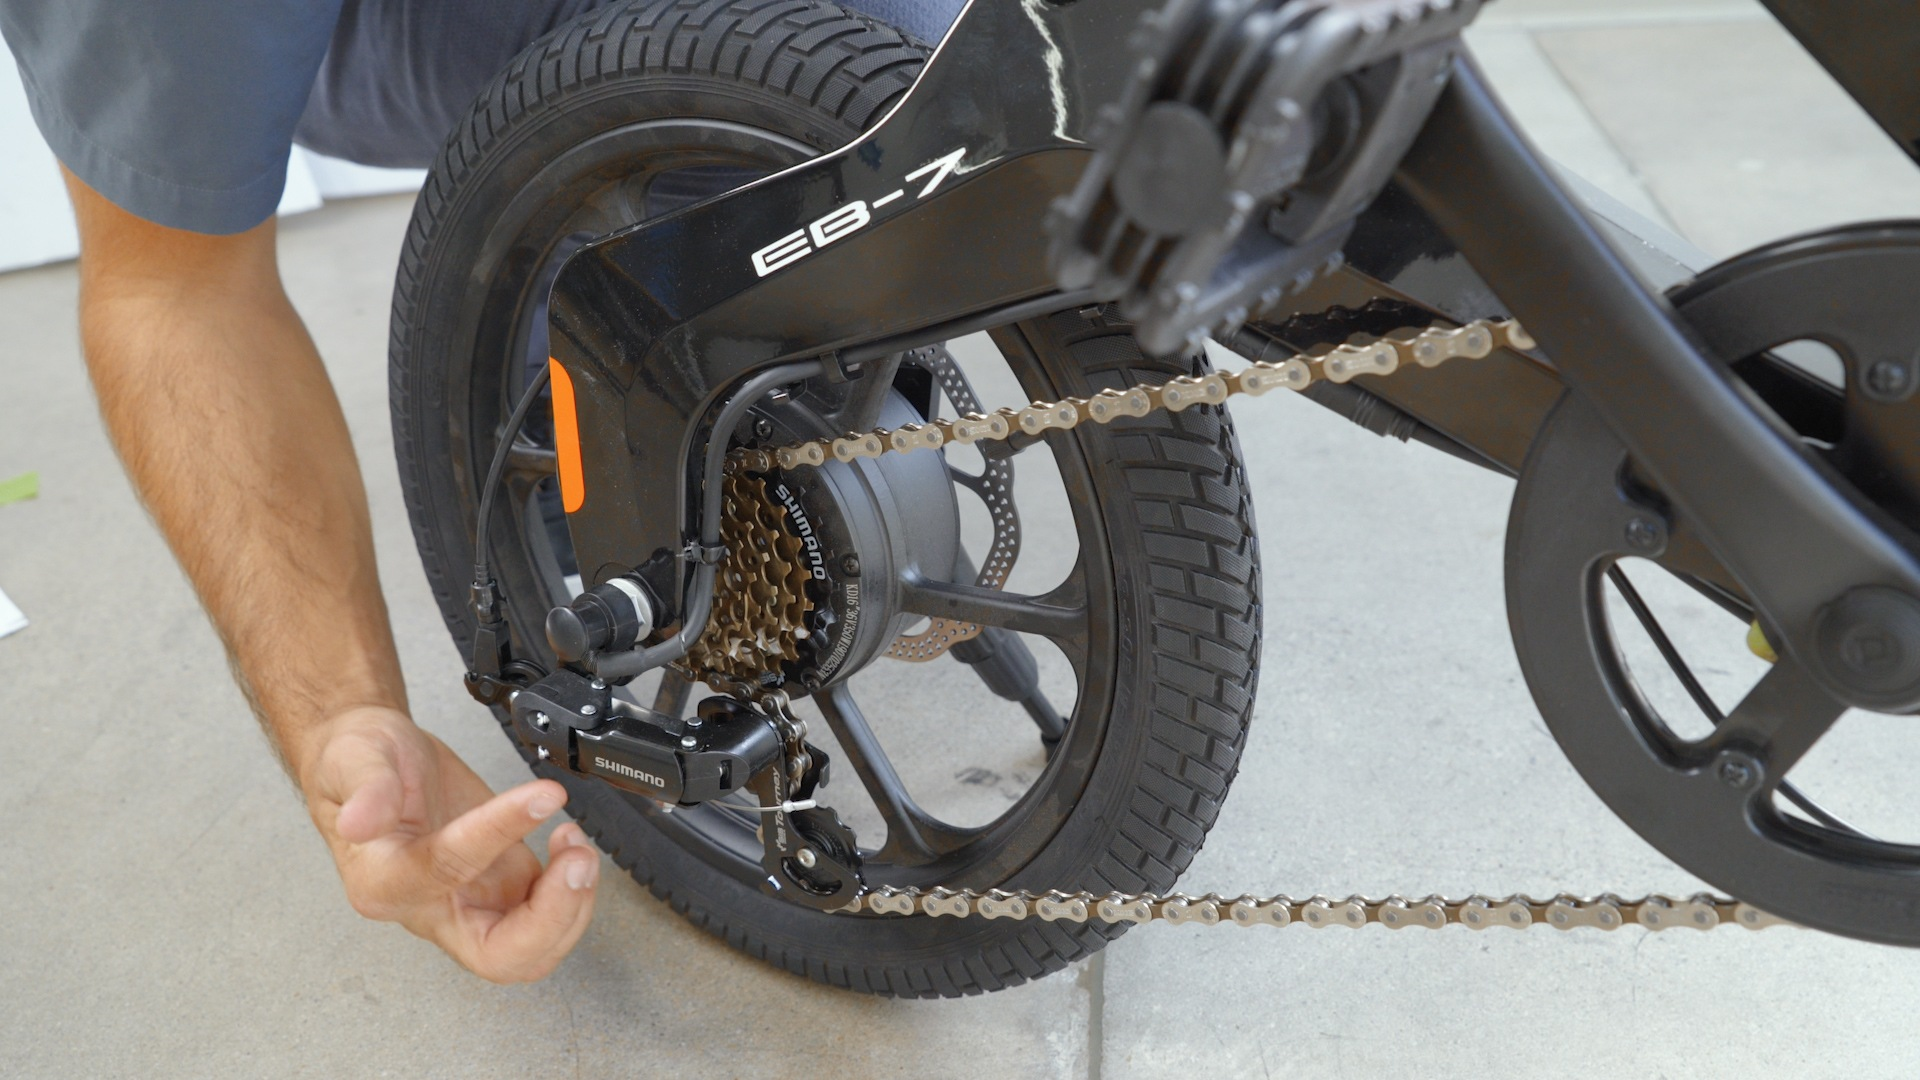 Closeup of man pointing to the rear wheel of the EB7 Plus with its brakes and Shimano gears.